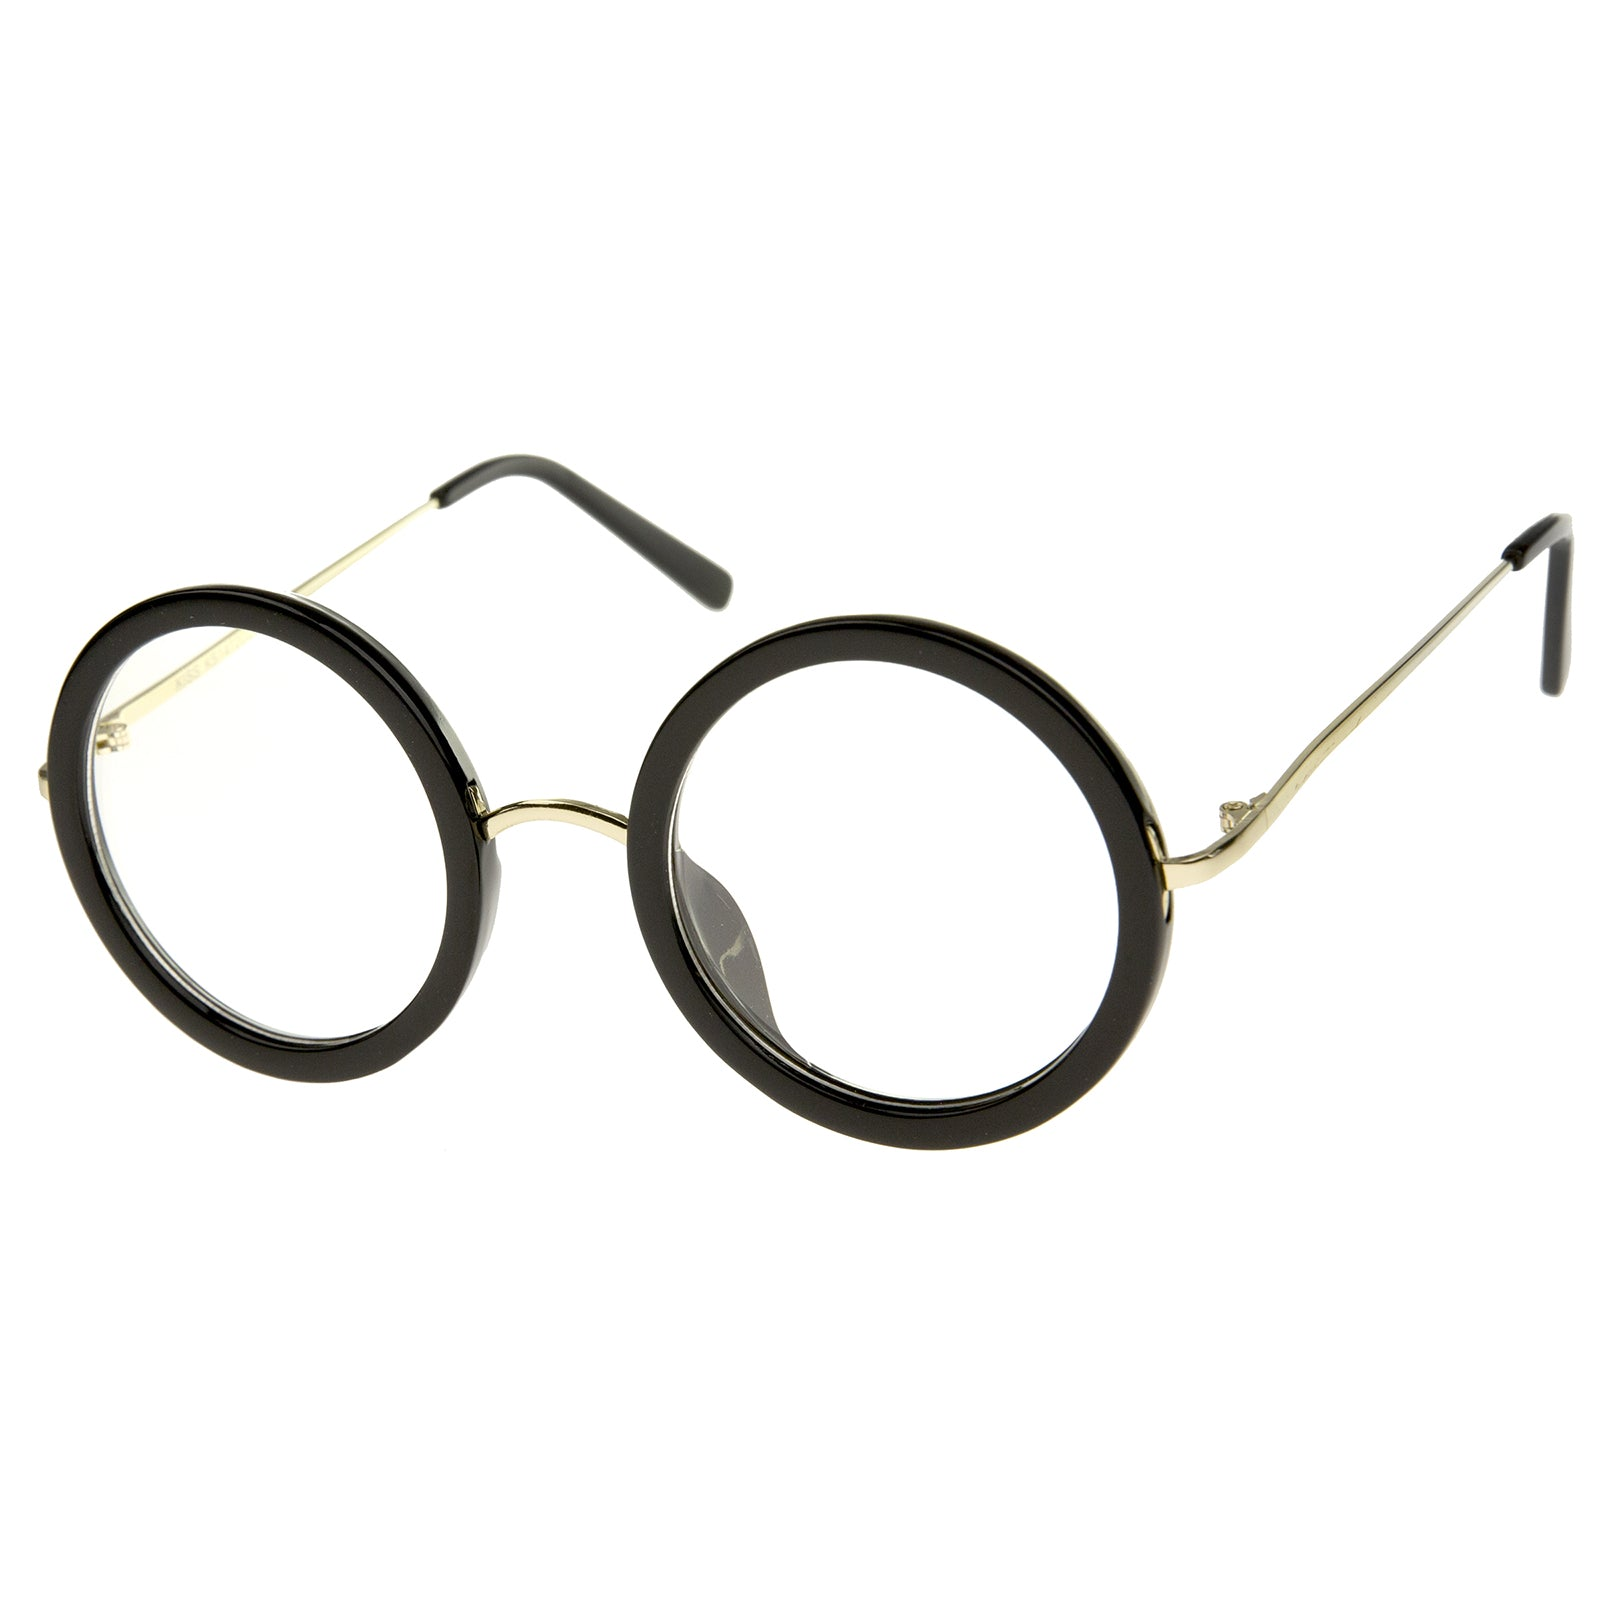 Lennon Retro Fashion Thick Frame Metal Temple Round Clear Lens Glasses 50mm - sunglass.la - 10